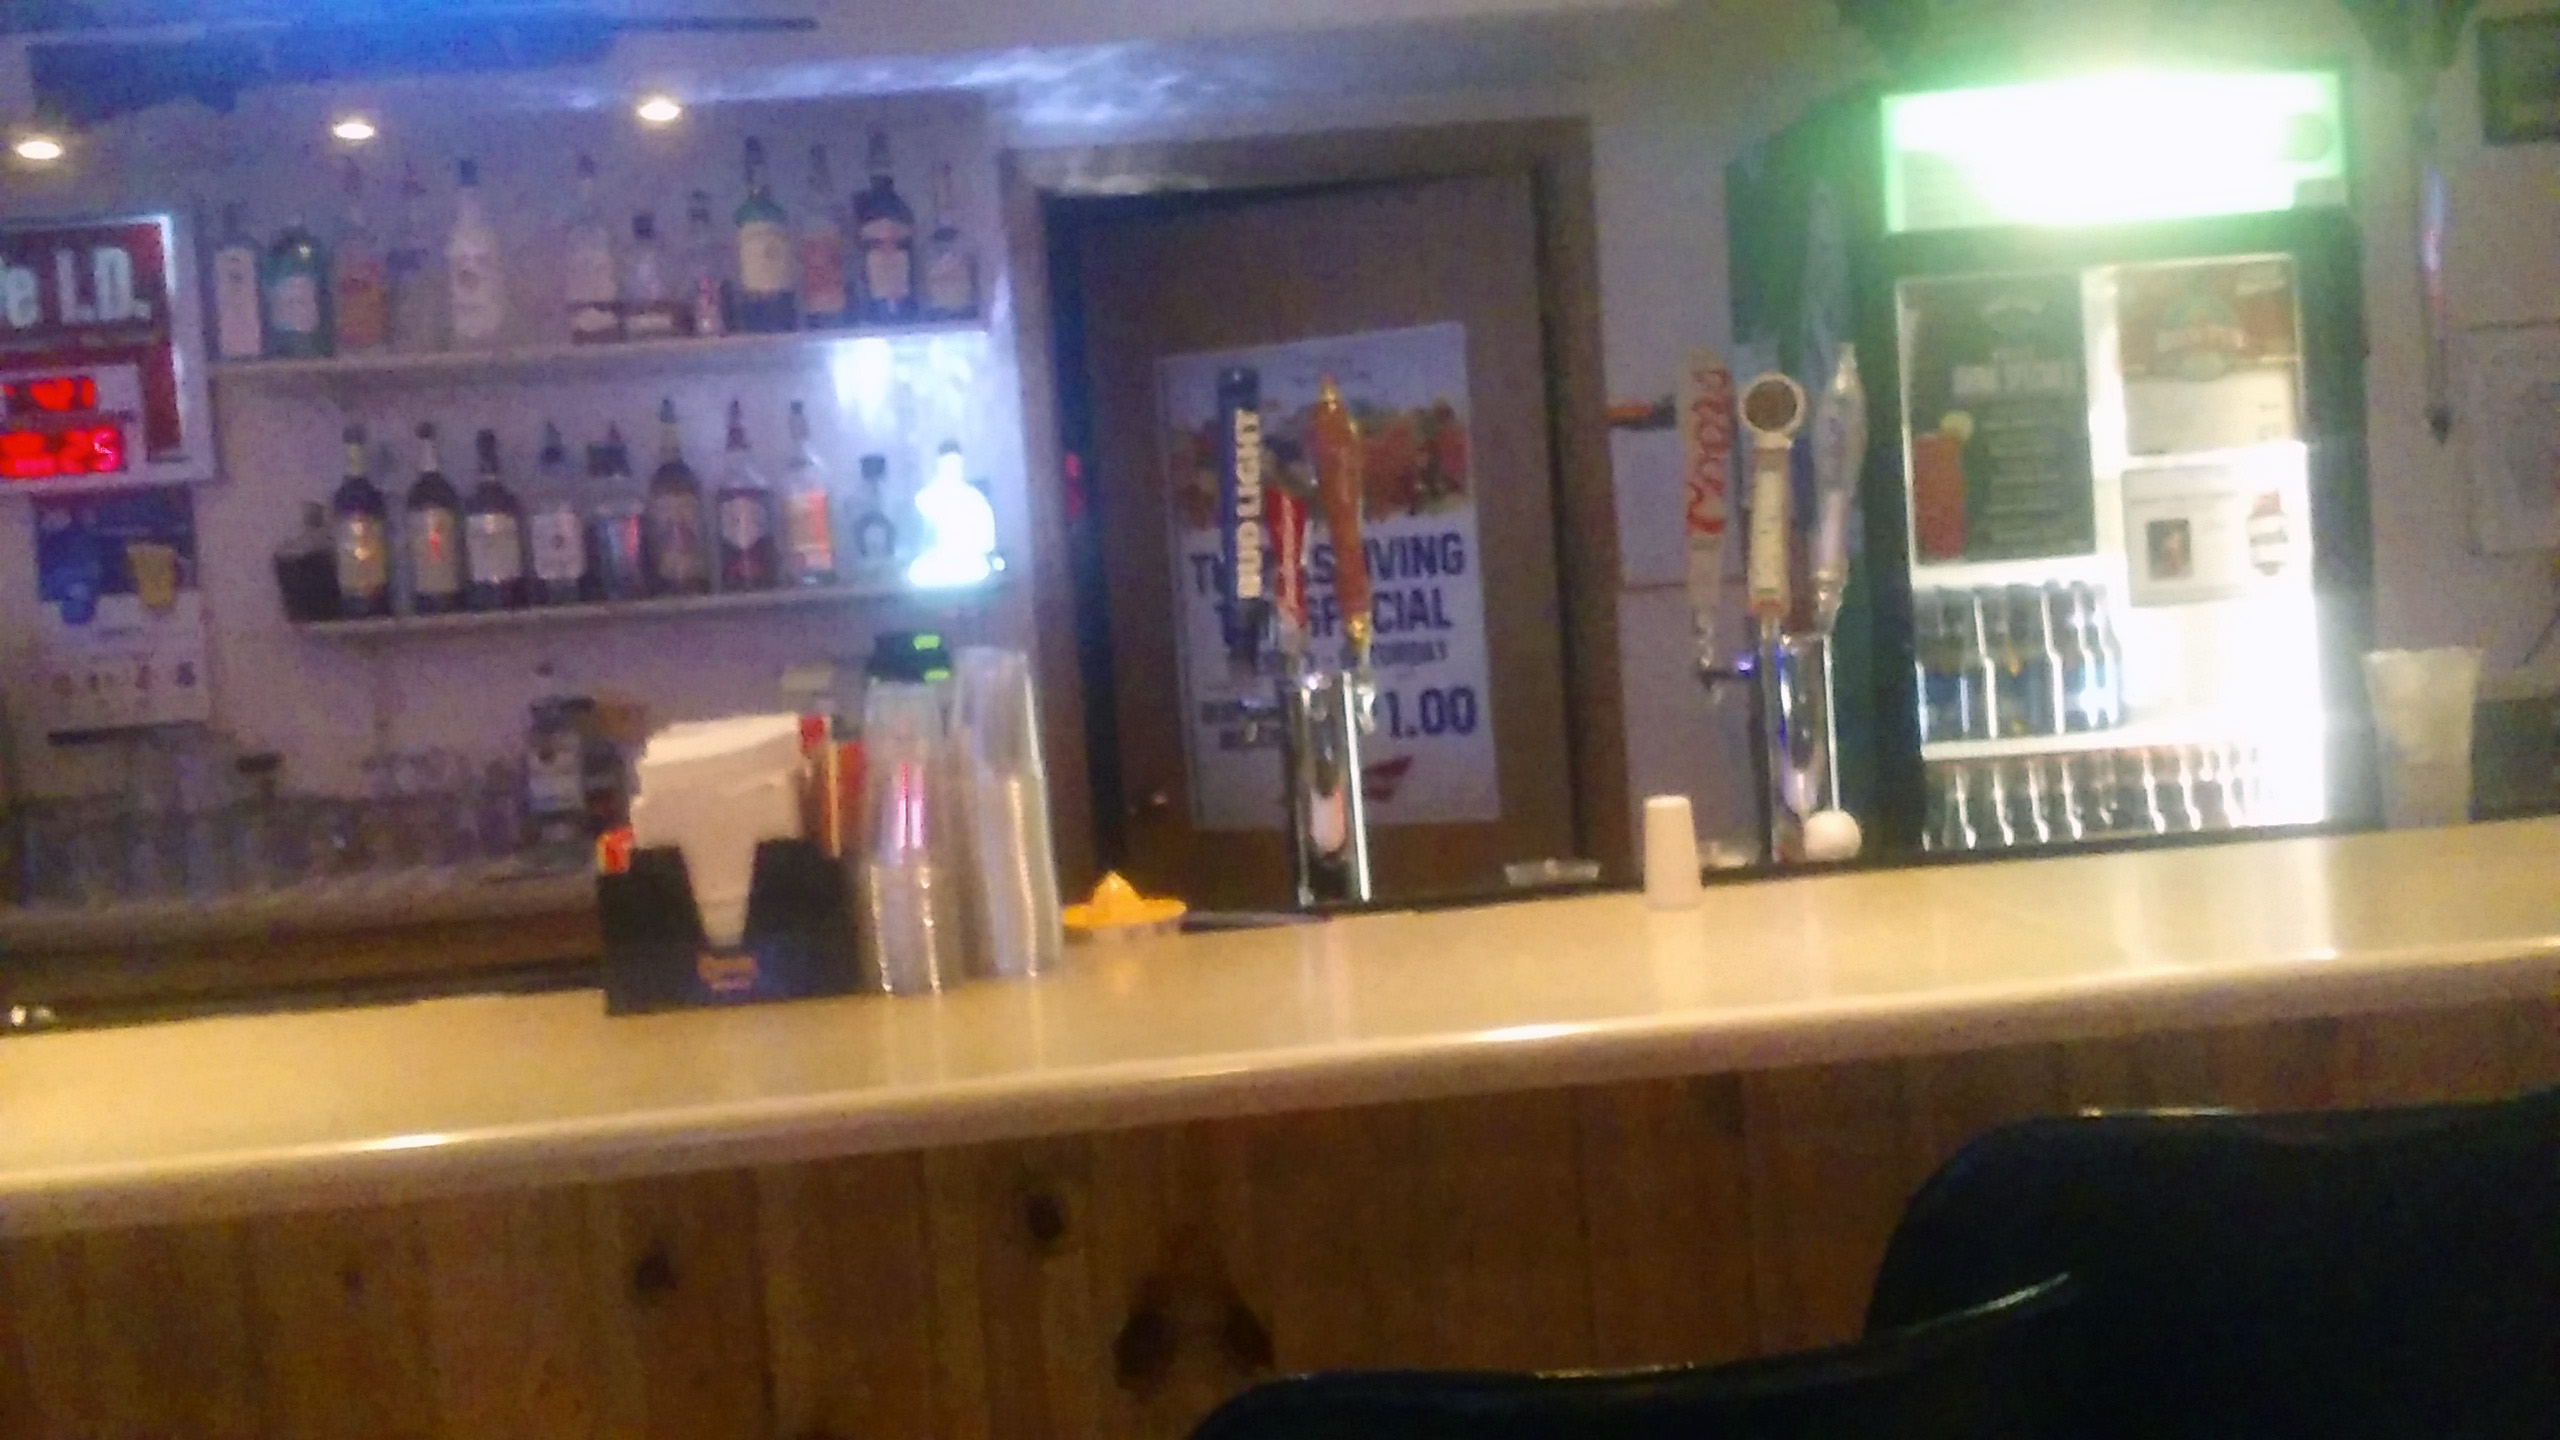 A picture of the main portion of the Eagles Bar, featuring the cash register with liquor bottles above, straws, napkins, and cups on the bar; and the beer bottle cooler to the right.